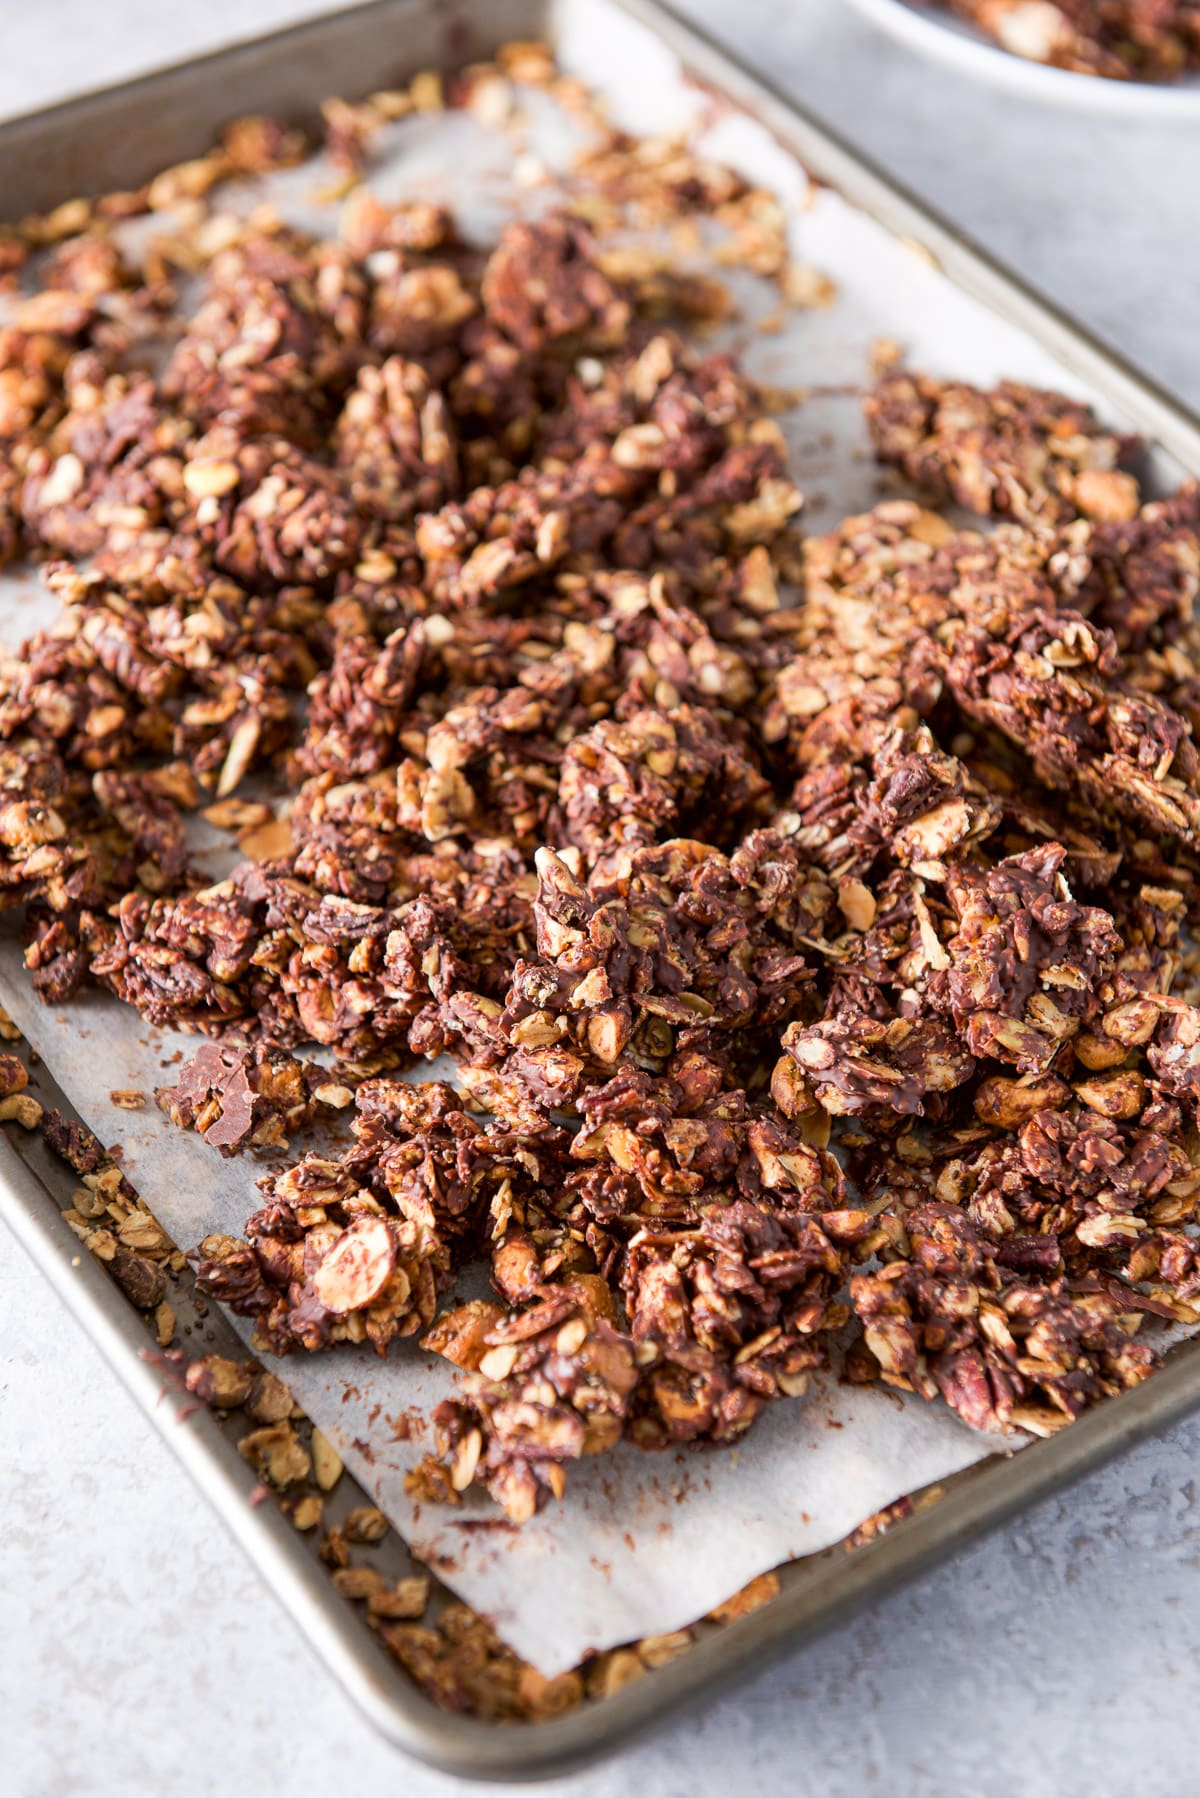 The chocolate firmed up on the granola and broken apart into clusters